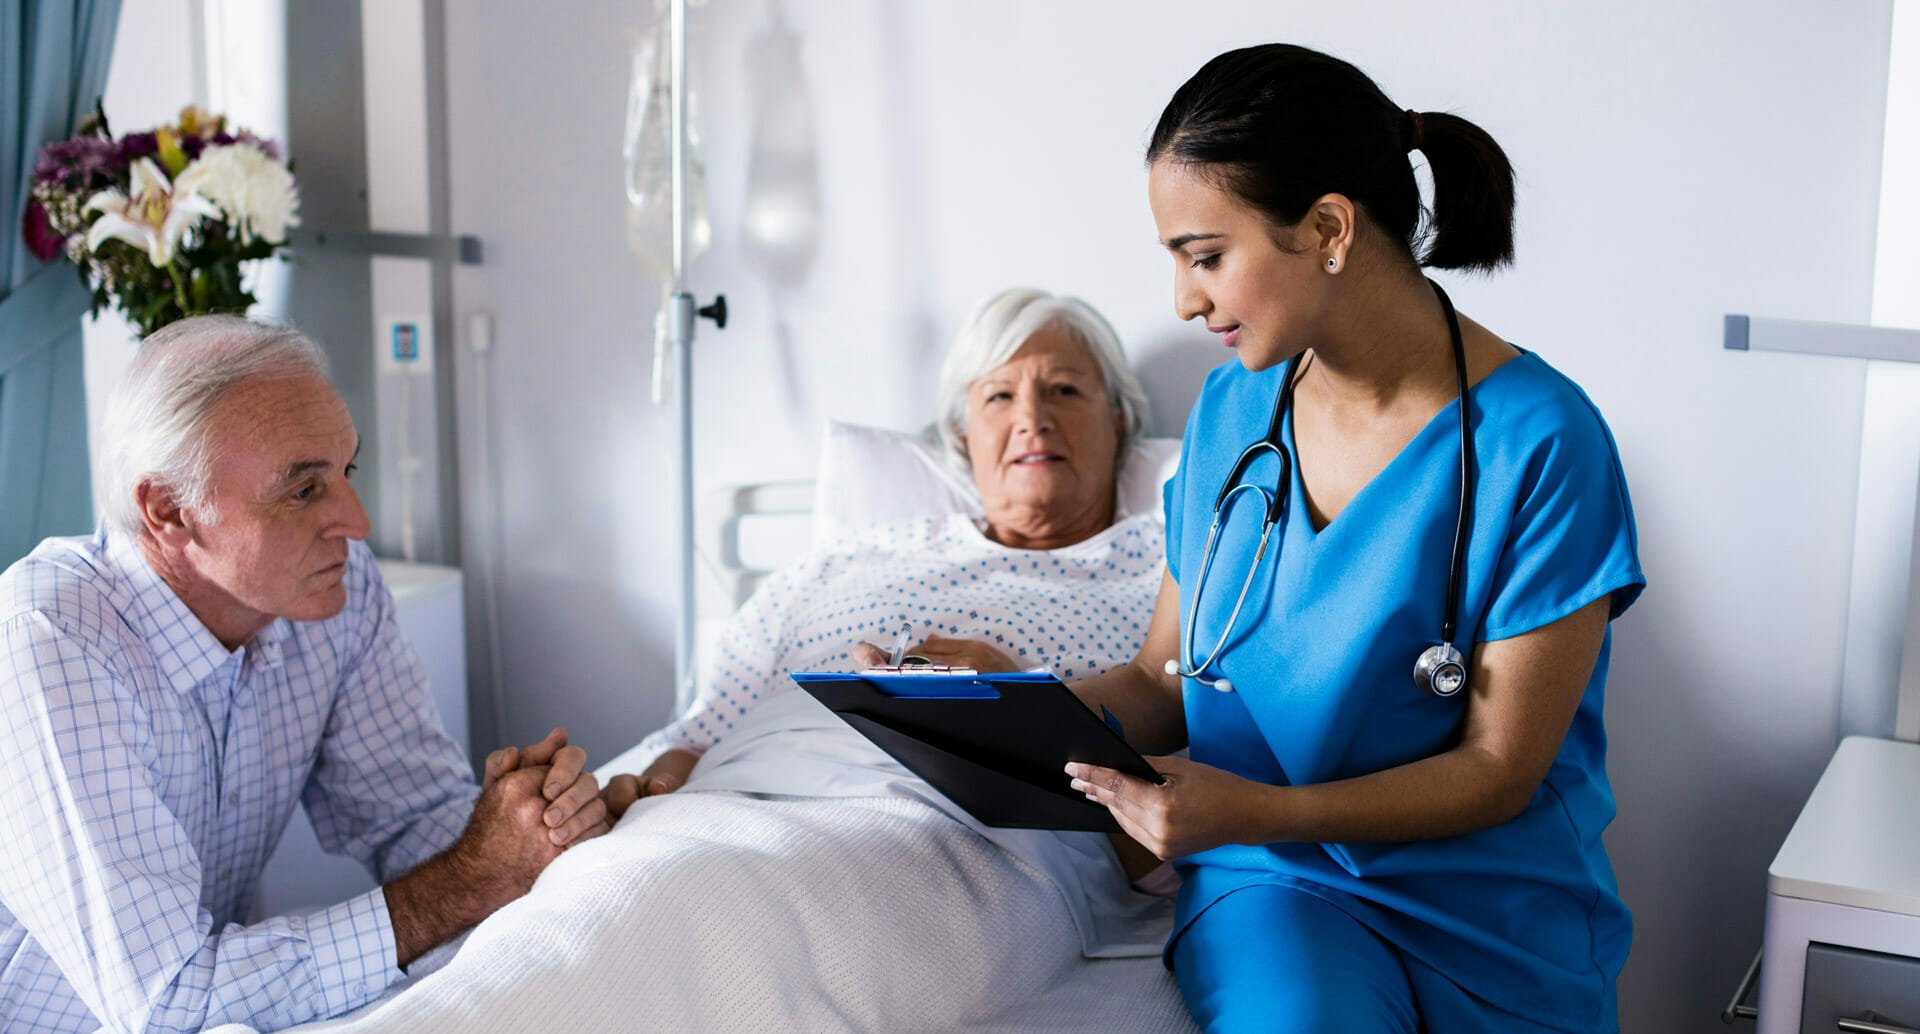 Cms Publishes Paperwork Discharge Planning Final Rules